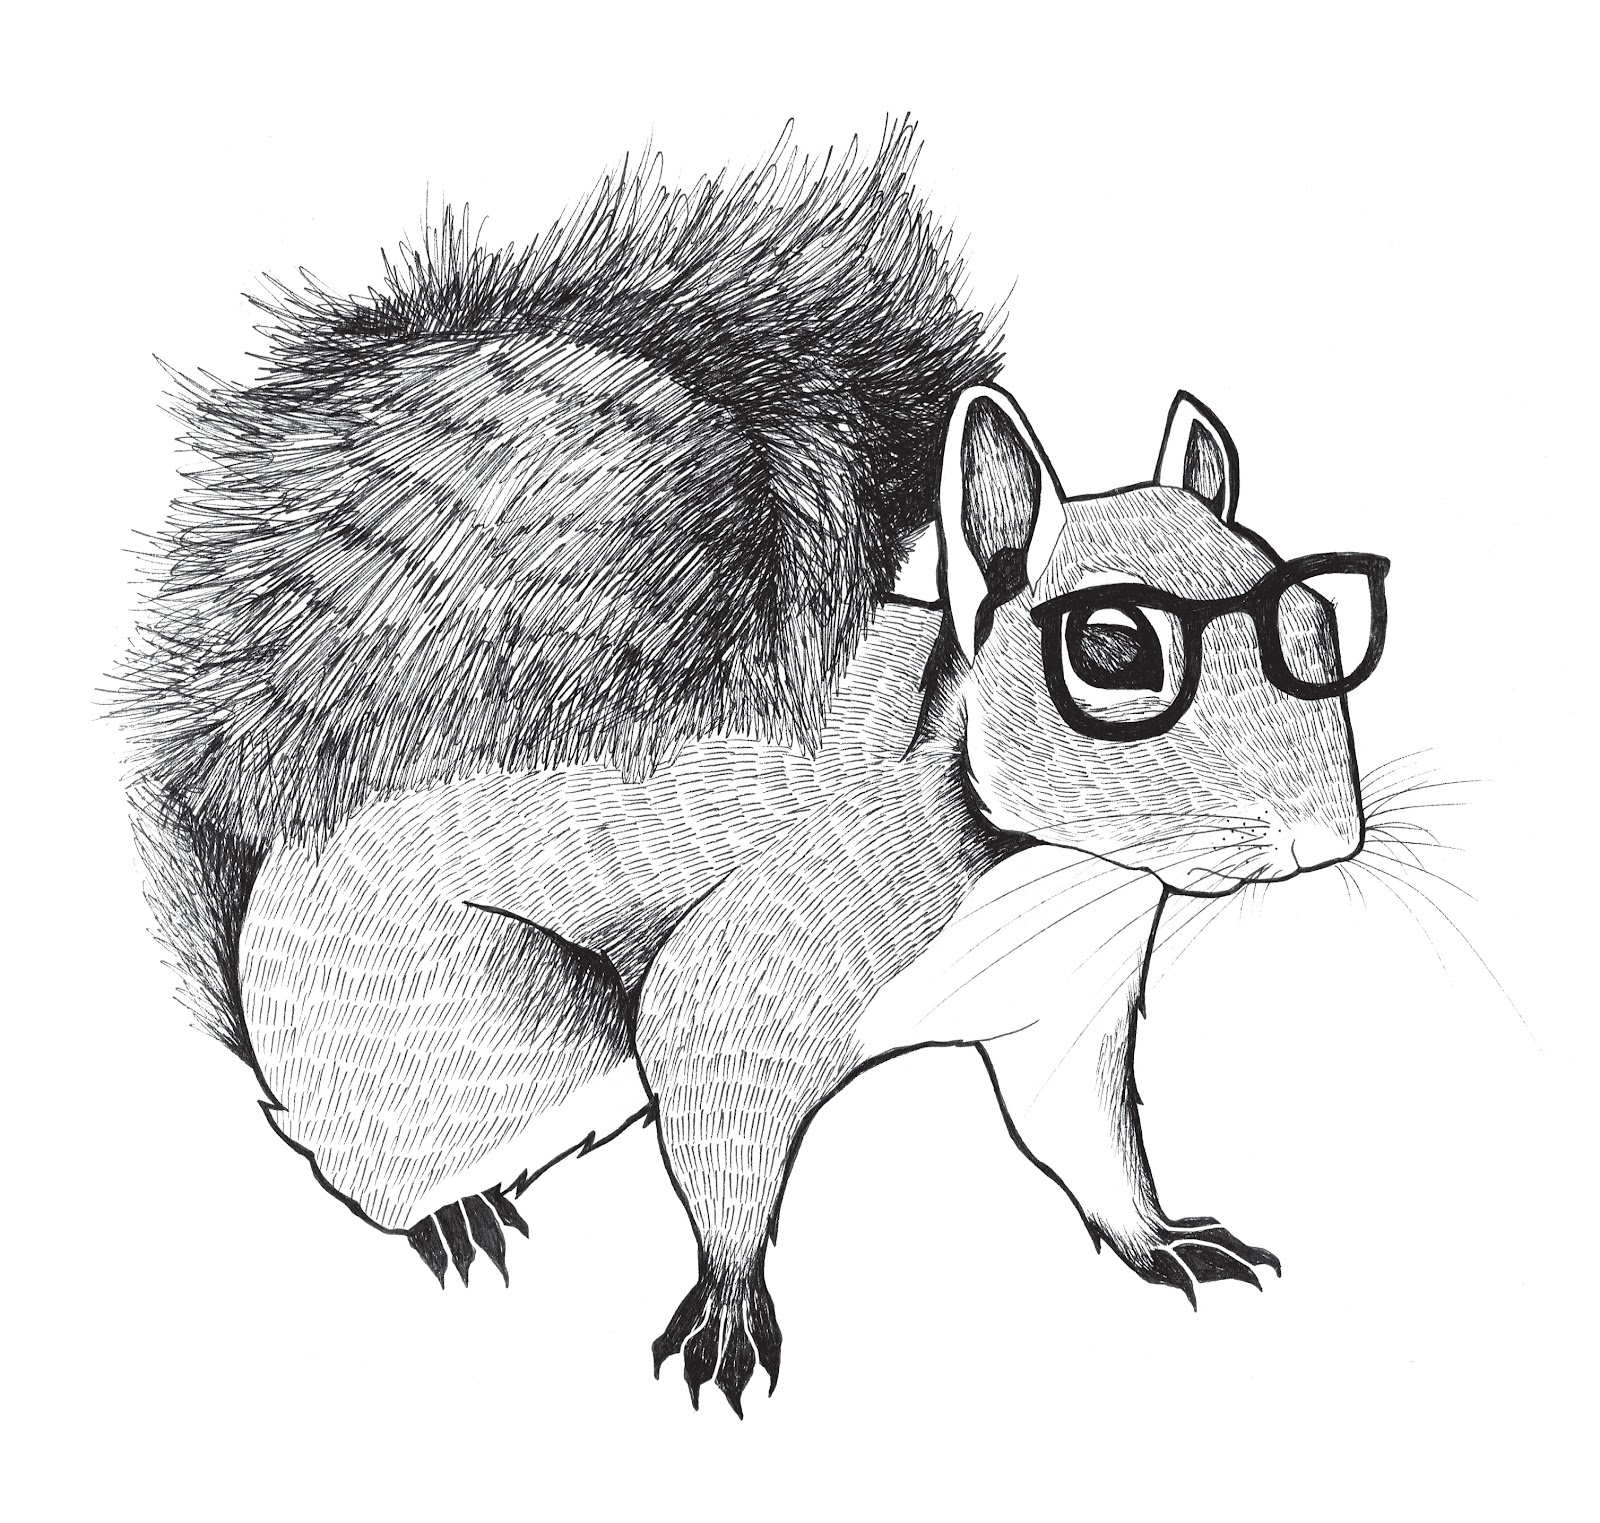 Squirrels with glasses - photo#18